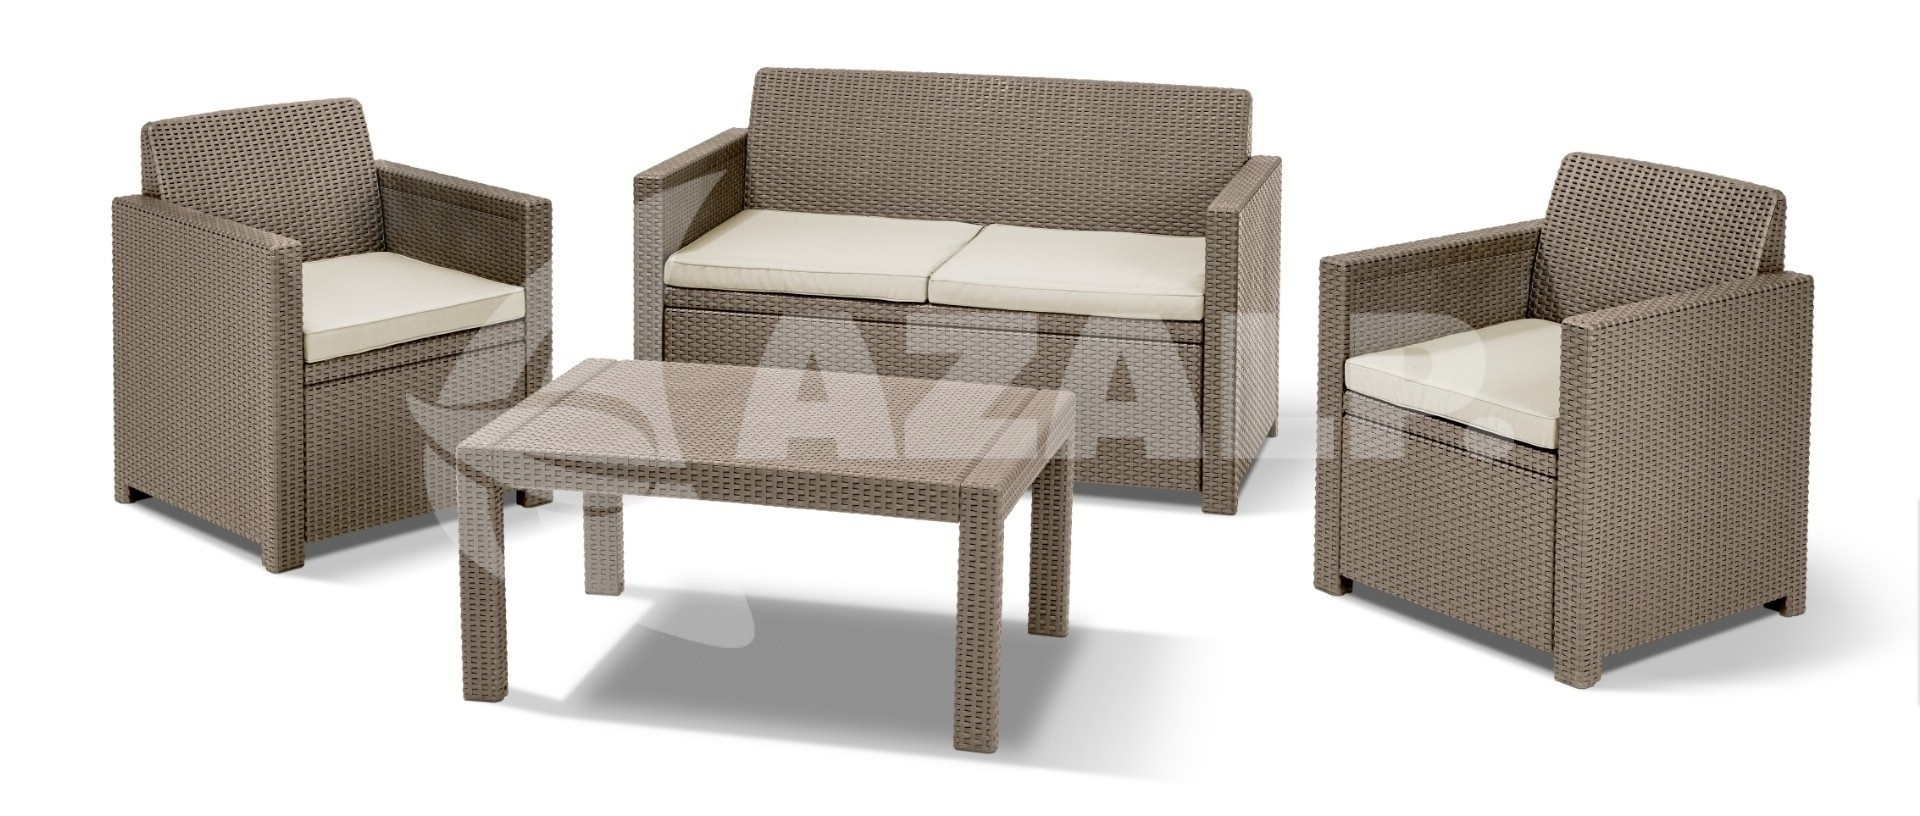 allibert merano lounge set cappucciono kopen bij. Black Bedroom Furniture Sets. Home Design Ideas